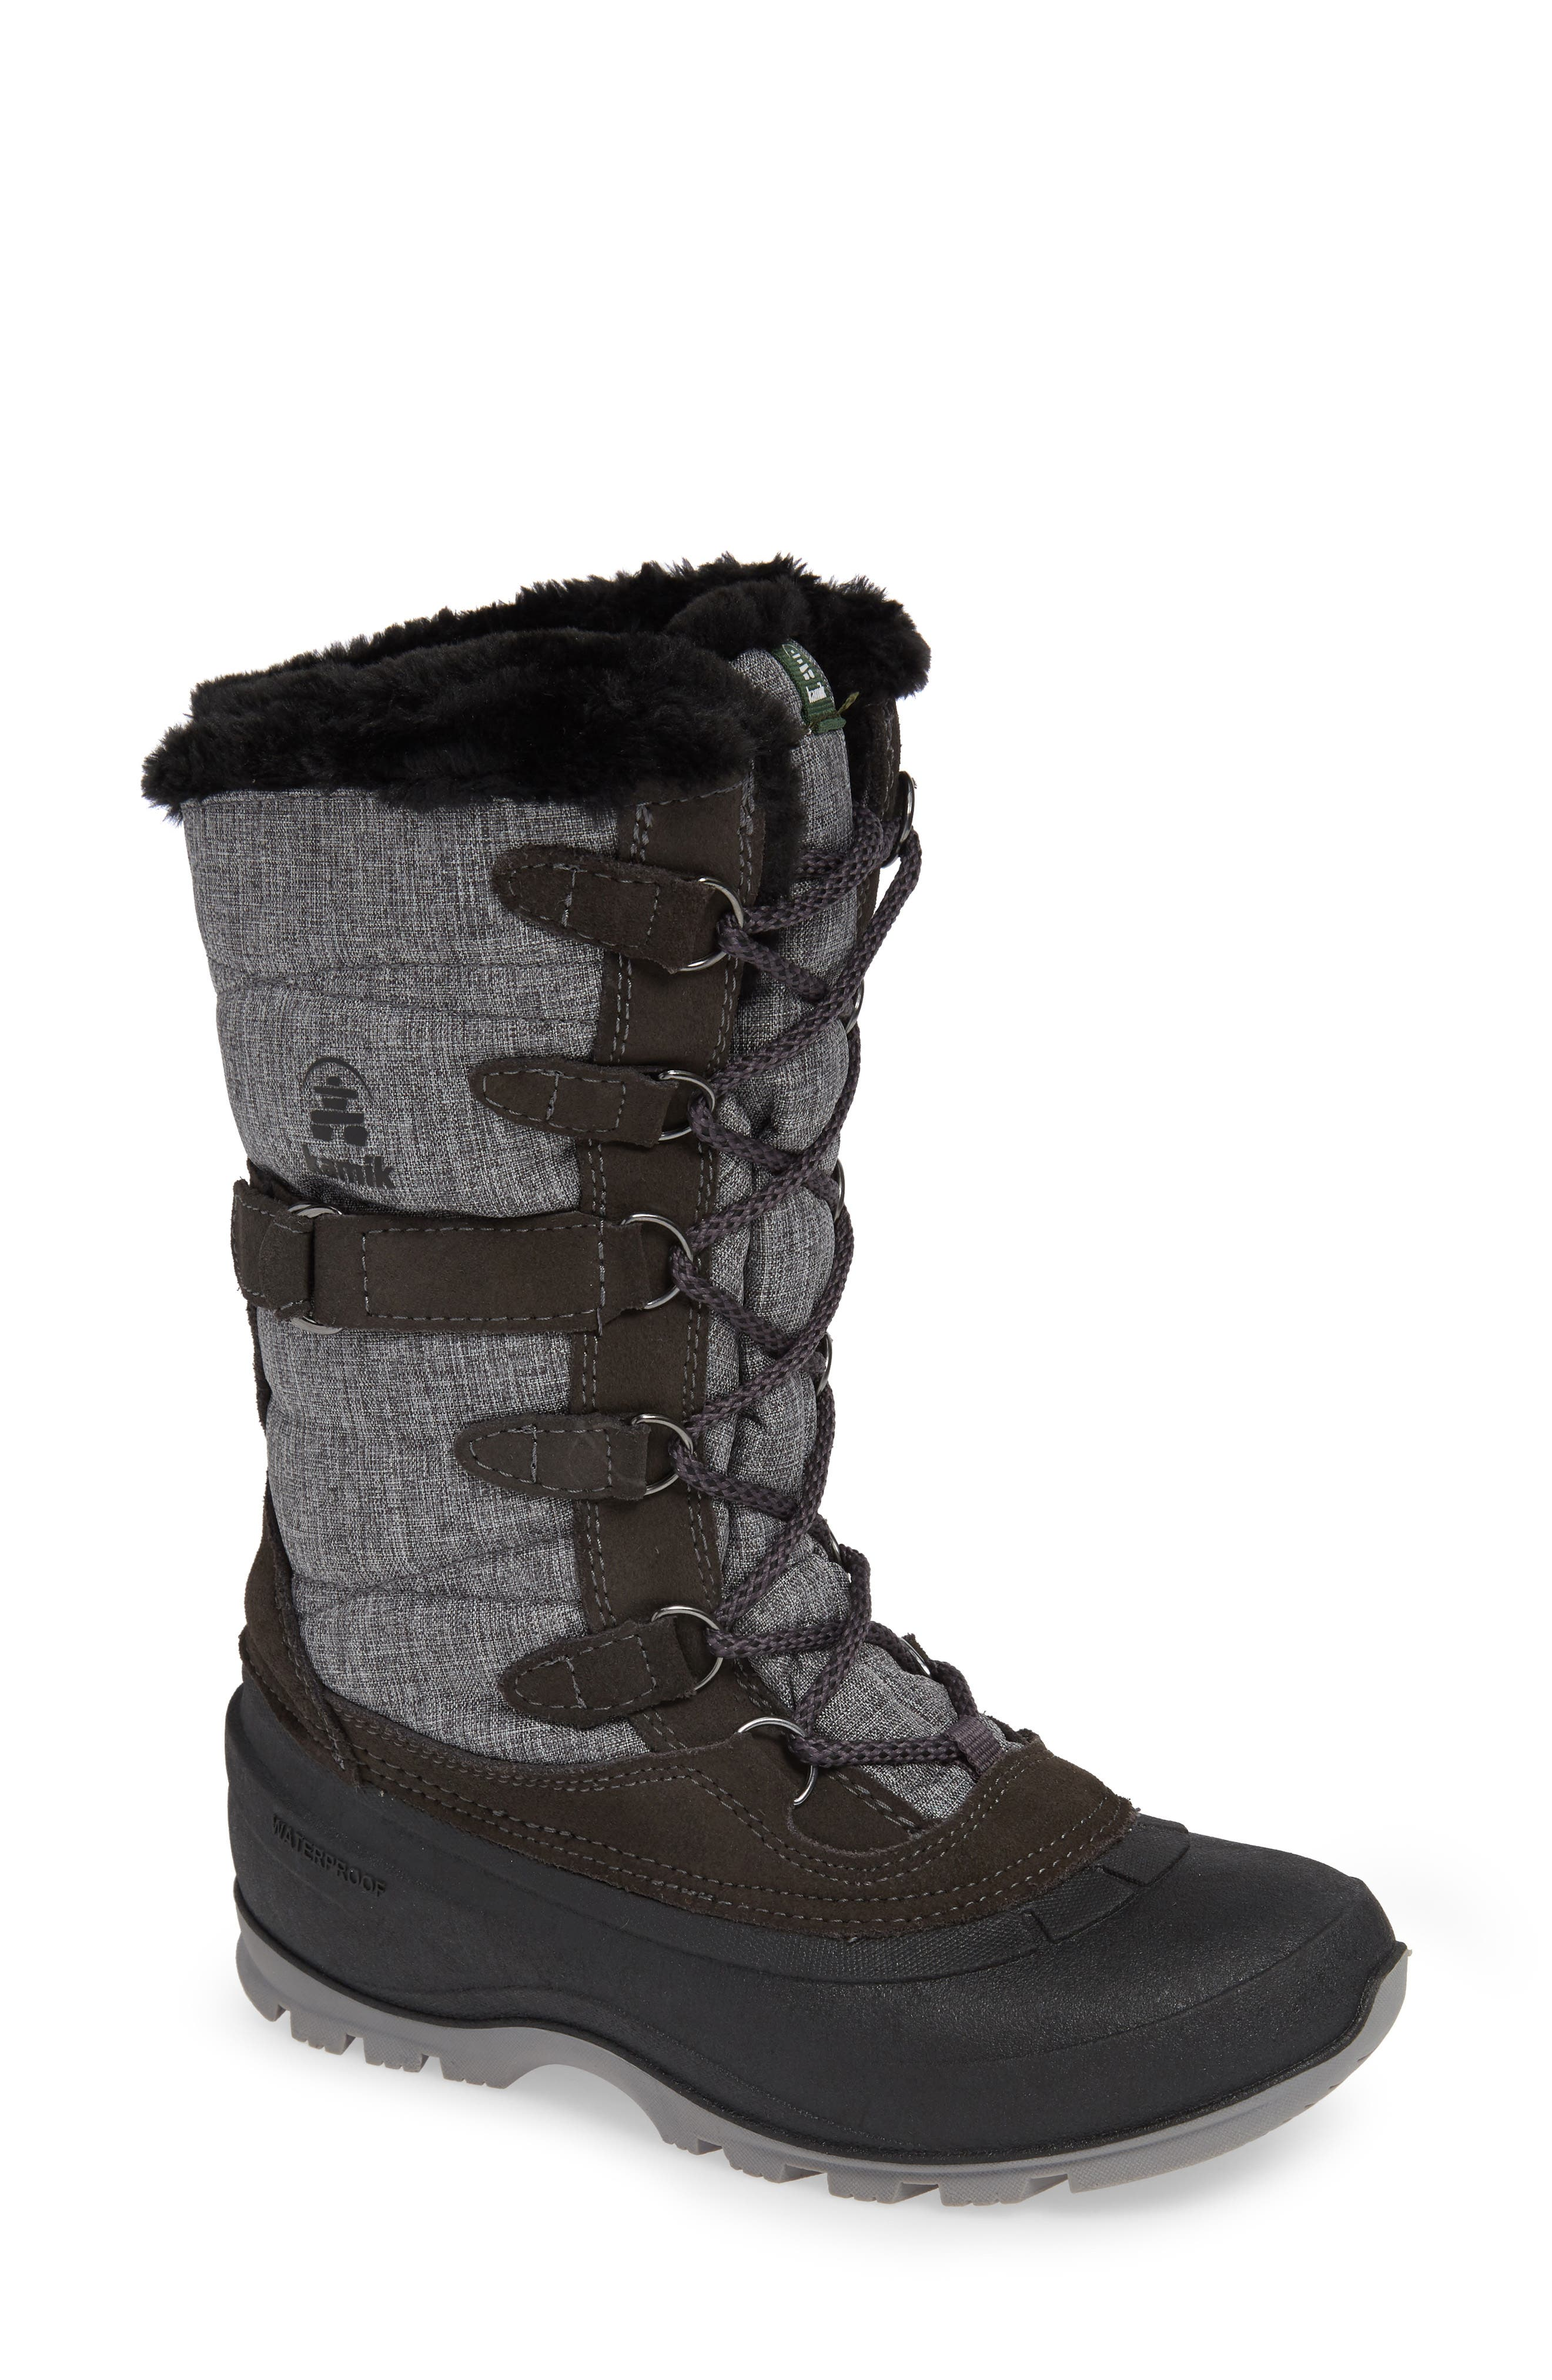 Kamik Snovalley2 Waterproof Thinsulate-Insulated Snow Boot, Grey